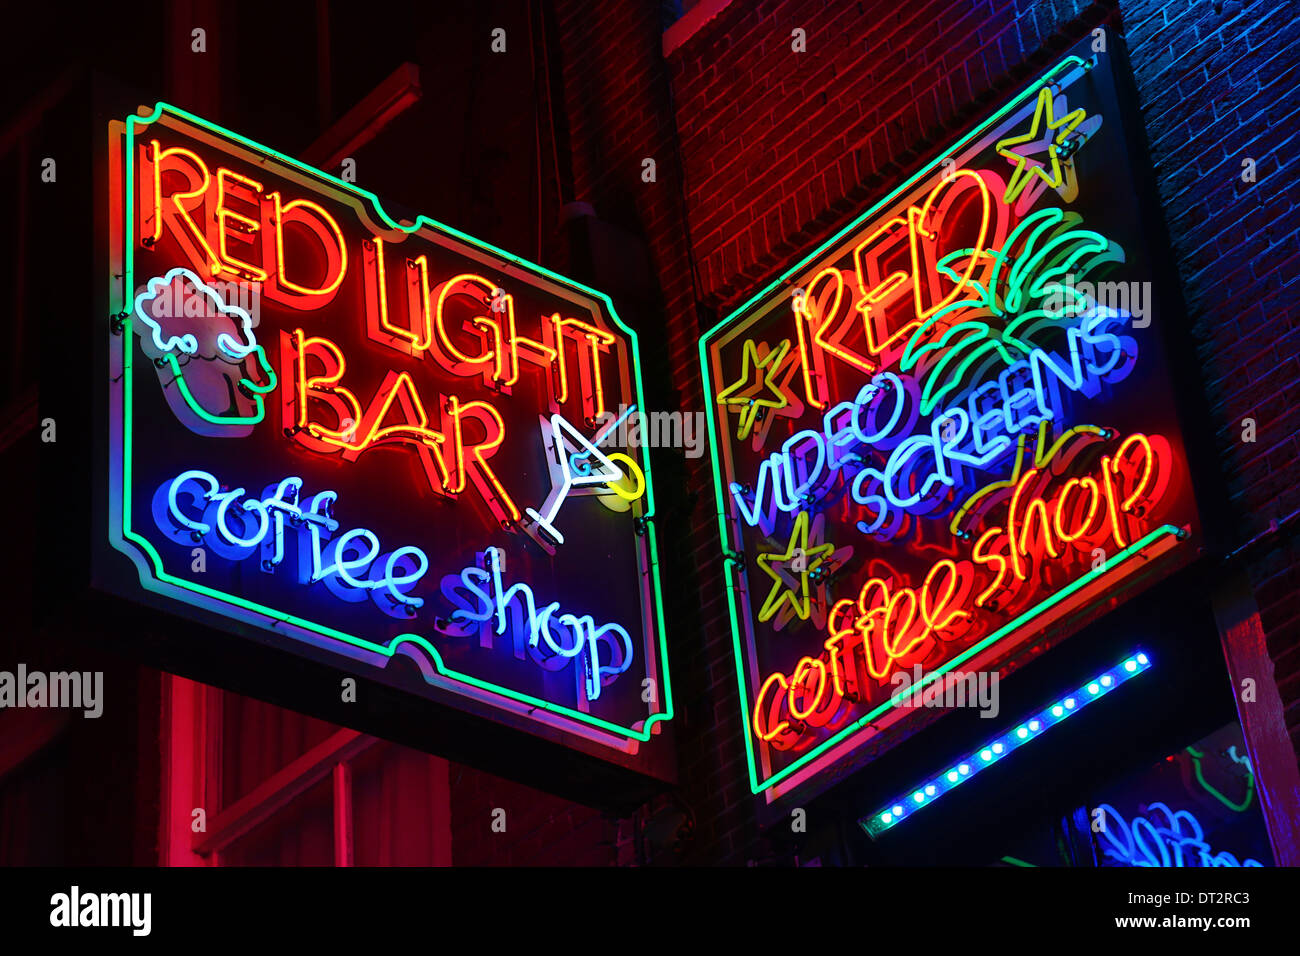 Neon lights of the red light bar coffeeshop where taking and smoking neon lights of the red light bar coffeeshop where taking and smoking drugs like marijuana is legal in the red light district in aloadofball Images